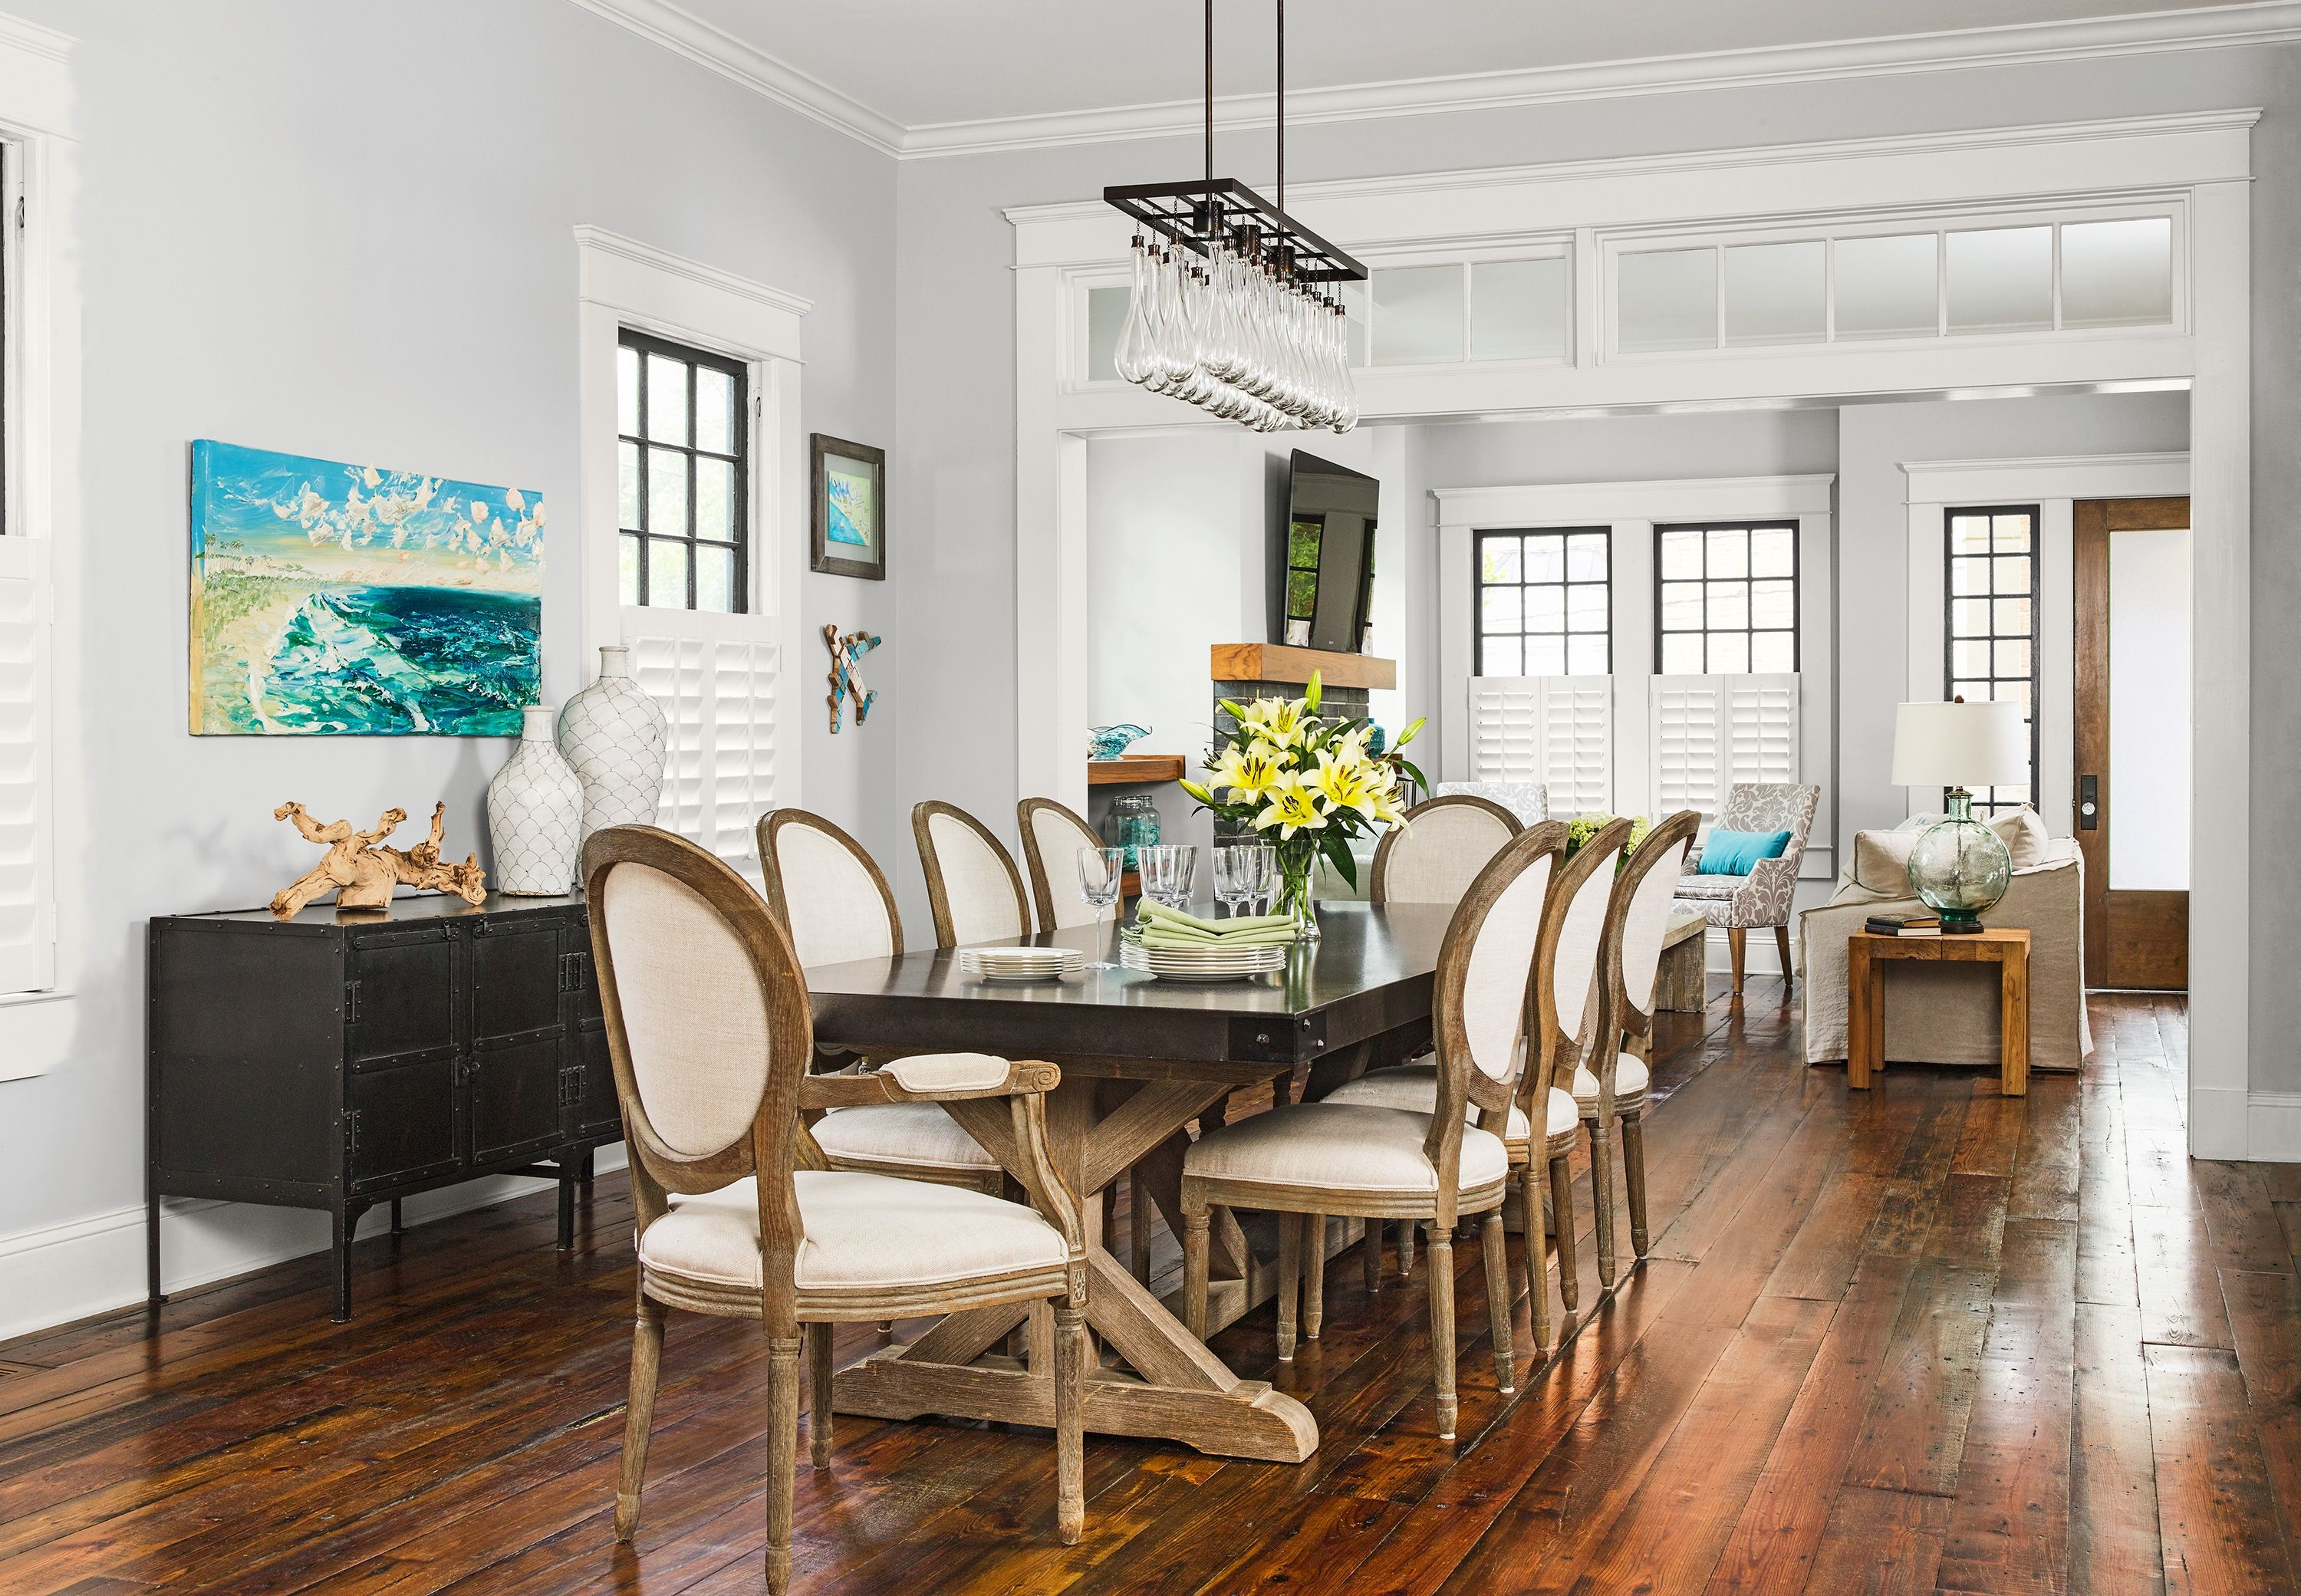 Before And After 1920 Bungalow Remodel With Beautiful Built Ins Antique Dining Room Furniture Dining Room Design Dining Room Furniture